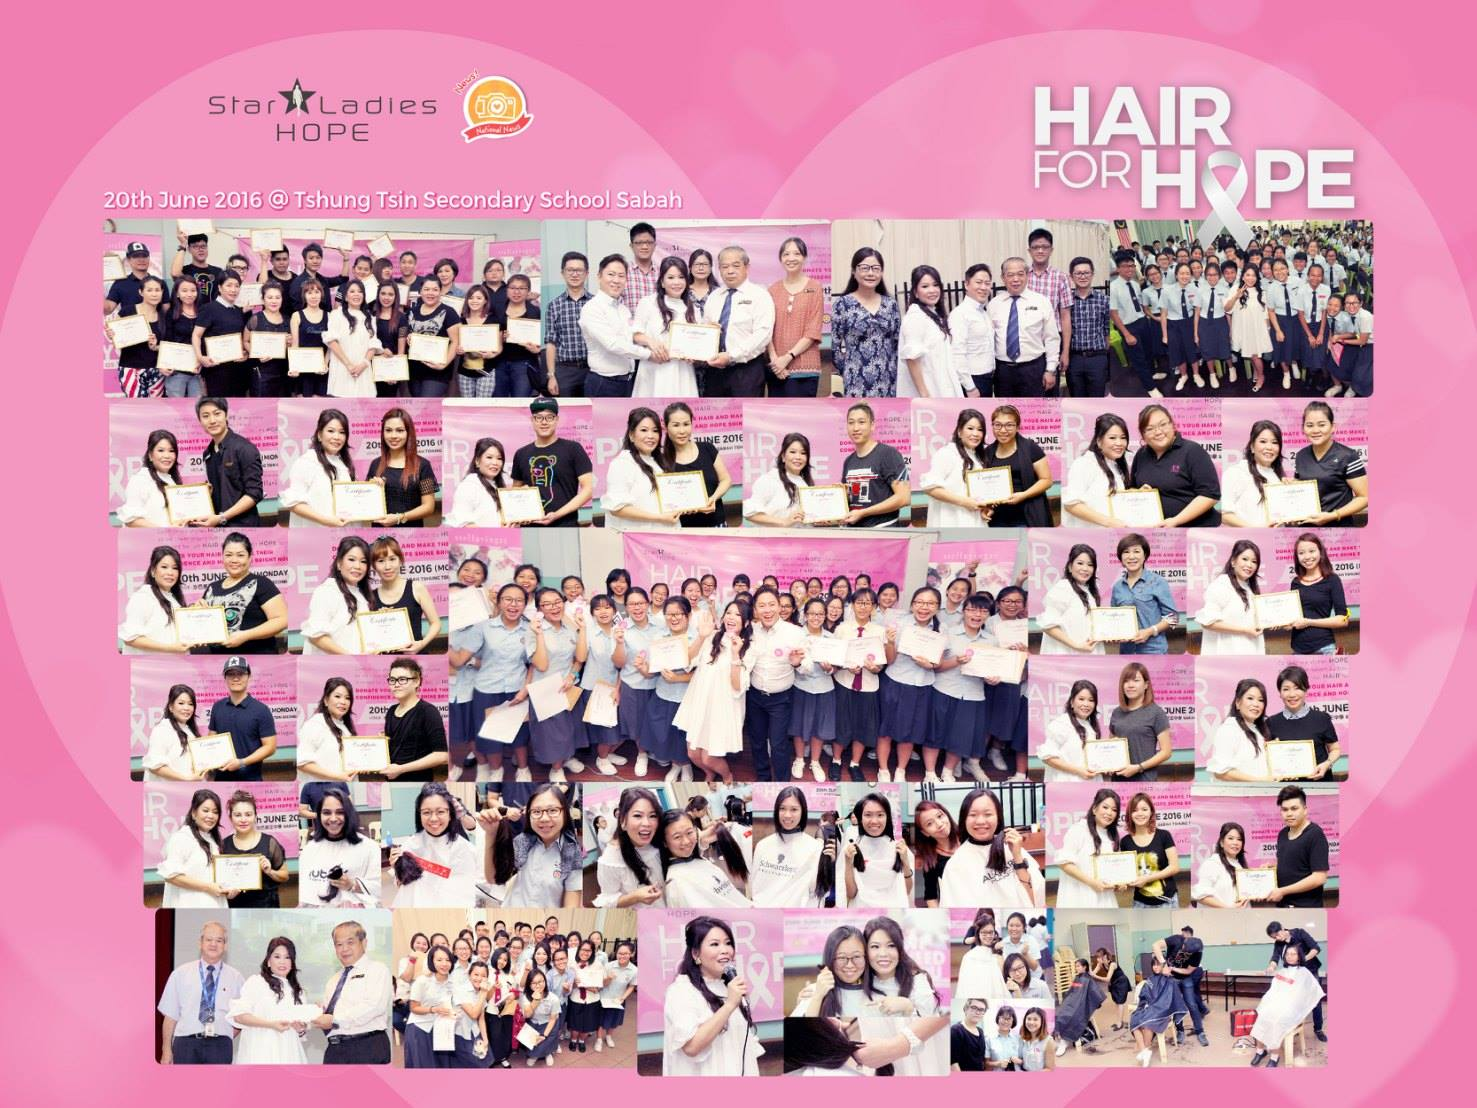 HAIR FOR HOPE . Sabah Tshung Tsin Secondary School |  20/6, StarLadies Hope were here in Sabah Tshung Tsin Secondary School. Stepping into this school brings back the energetic memories back then, seeing every female students register themselves to donate their hair for this campaign, we feel so proud and touched with your kind heart. Youngsters understands the true meaning of Happiness comes from responsibility, everyday is meaningful when we are thankful for every little aspects in life. Special thanks for the Headmaster of Sabah Tshung Tsin Secondary School for collaborating with us in bring this campaign into school, giving a chance for the youngster to further aware of the importance of social care. Big thank you to all 20 hairstylist who spare your precious time for cutting hairs for 300 students! We are blessed to all the love and care shared in Hair for Hope, till then, may everyone be blessed with health and love.  Special Thanks to 特别感谢:  1. Sabah Tshung Tsin Secondary School Headmaster, Teachers and Students 2. Agnes Voo Lee Chu (P.A Uniex Saloon) 3. Angello Tsen Wan Shin 4. Chai Sook Team  5. Chong Kai Ni (Y Hair Saloon) 6. Chris Chen Siong Tsin (Chris Team Saloon) 7. Christina Cham (88 Hairdressing and Beauty Saloon) 8. Chung Jia Jun 9. Elaine Lam  10. Erica Liew Saik Mee (AR Saloon) 11. Esterlina Pandi Marten 12. Ha How Kong (Impression Saloon) 13. Joanne Chok (A&J Salon) 14. Kent Wong (Impression Saloon) 15. Koh Chui Fang (TOP9 II Hair Beauty Unisex Saloon) 16. Rita Chia (Ideal Saloon) 17. Sam Leung Jiun Shyang (Team Saloon) 18. Sharen Teo Chui Theng (New Rebecca Saloon) 19. Shirley (A&J Saloon) 20. Terrance Yong (Elegance Hair & Beauty Saloon) 21. Veronica Ong Ken Yun (3D Saloon)  #starladieshope   #sabahtshungtsinsecondaryschool  #hairforhope